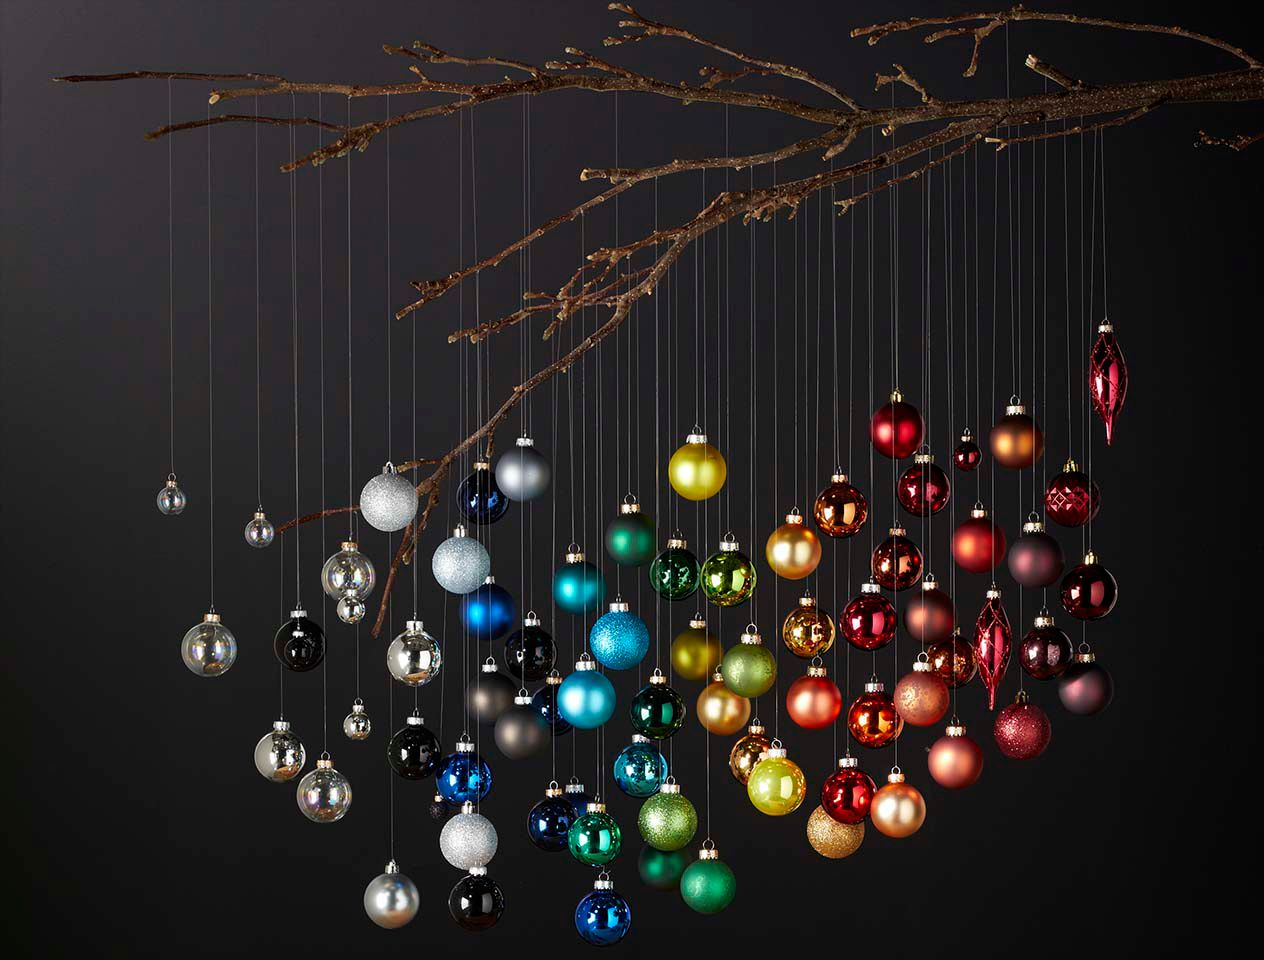 Baubles hanging from a tree